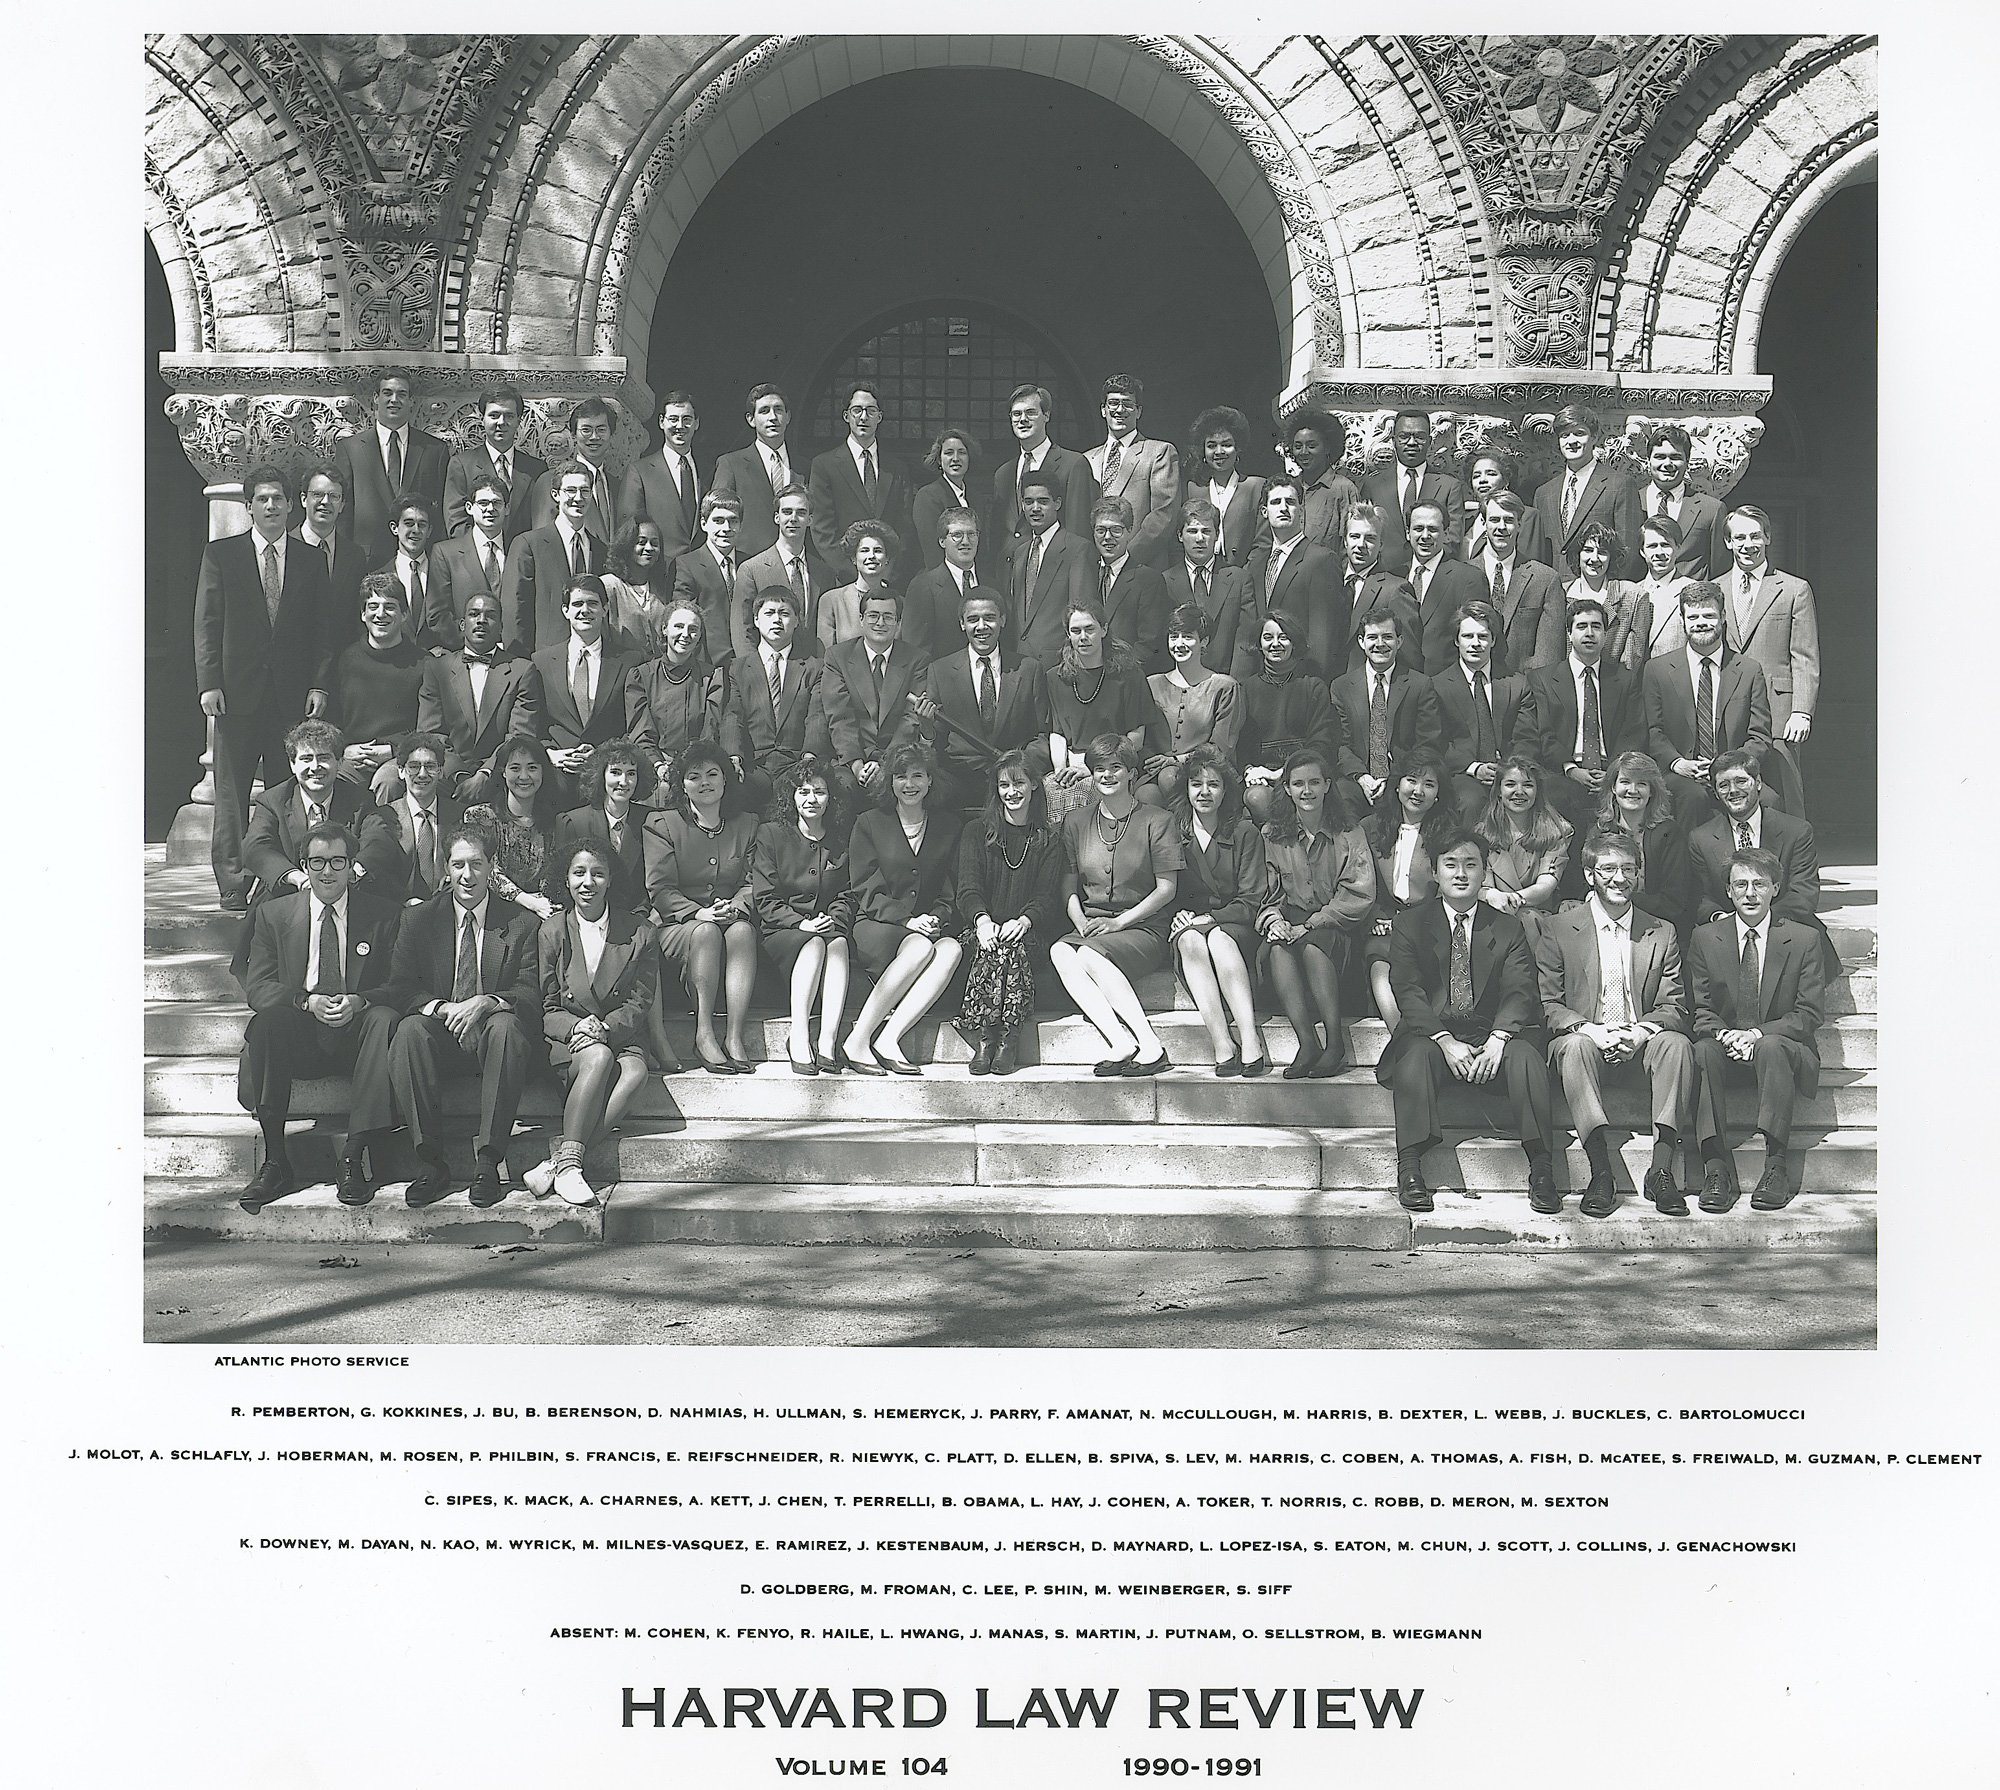 #TBT to @POTUS and his @HarLRev class. Checkout his entry today on #CriminalJusticeReform: https://t.co/31WPQyed72 https://t.co/ya7hwmjlr4